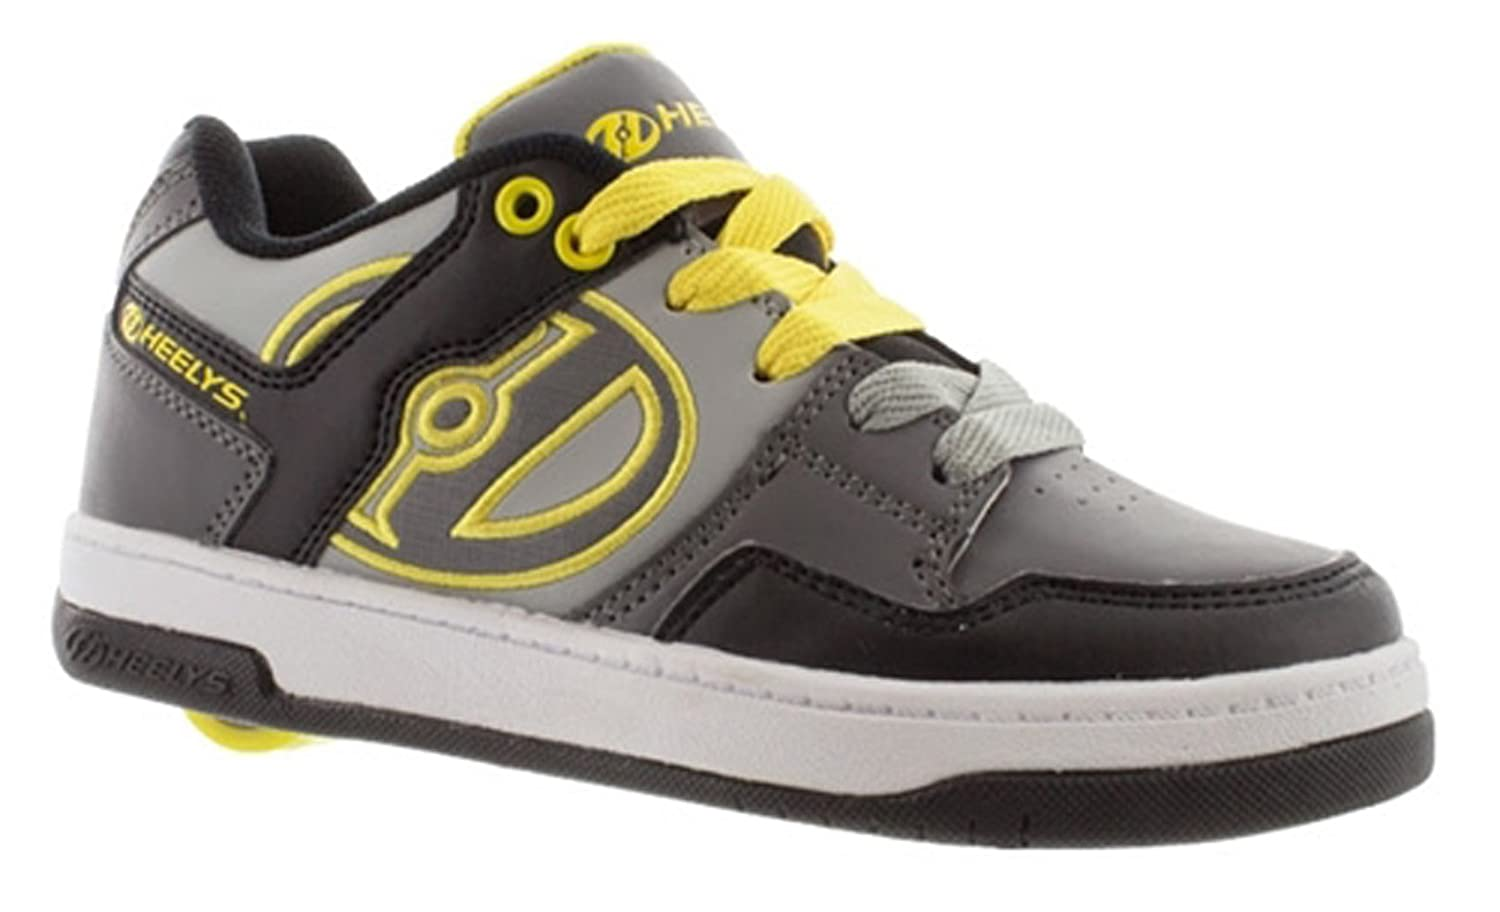 Heelys FLOW Schuh 2015 charcoal/silver/purple FLOW - K